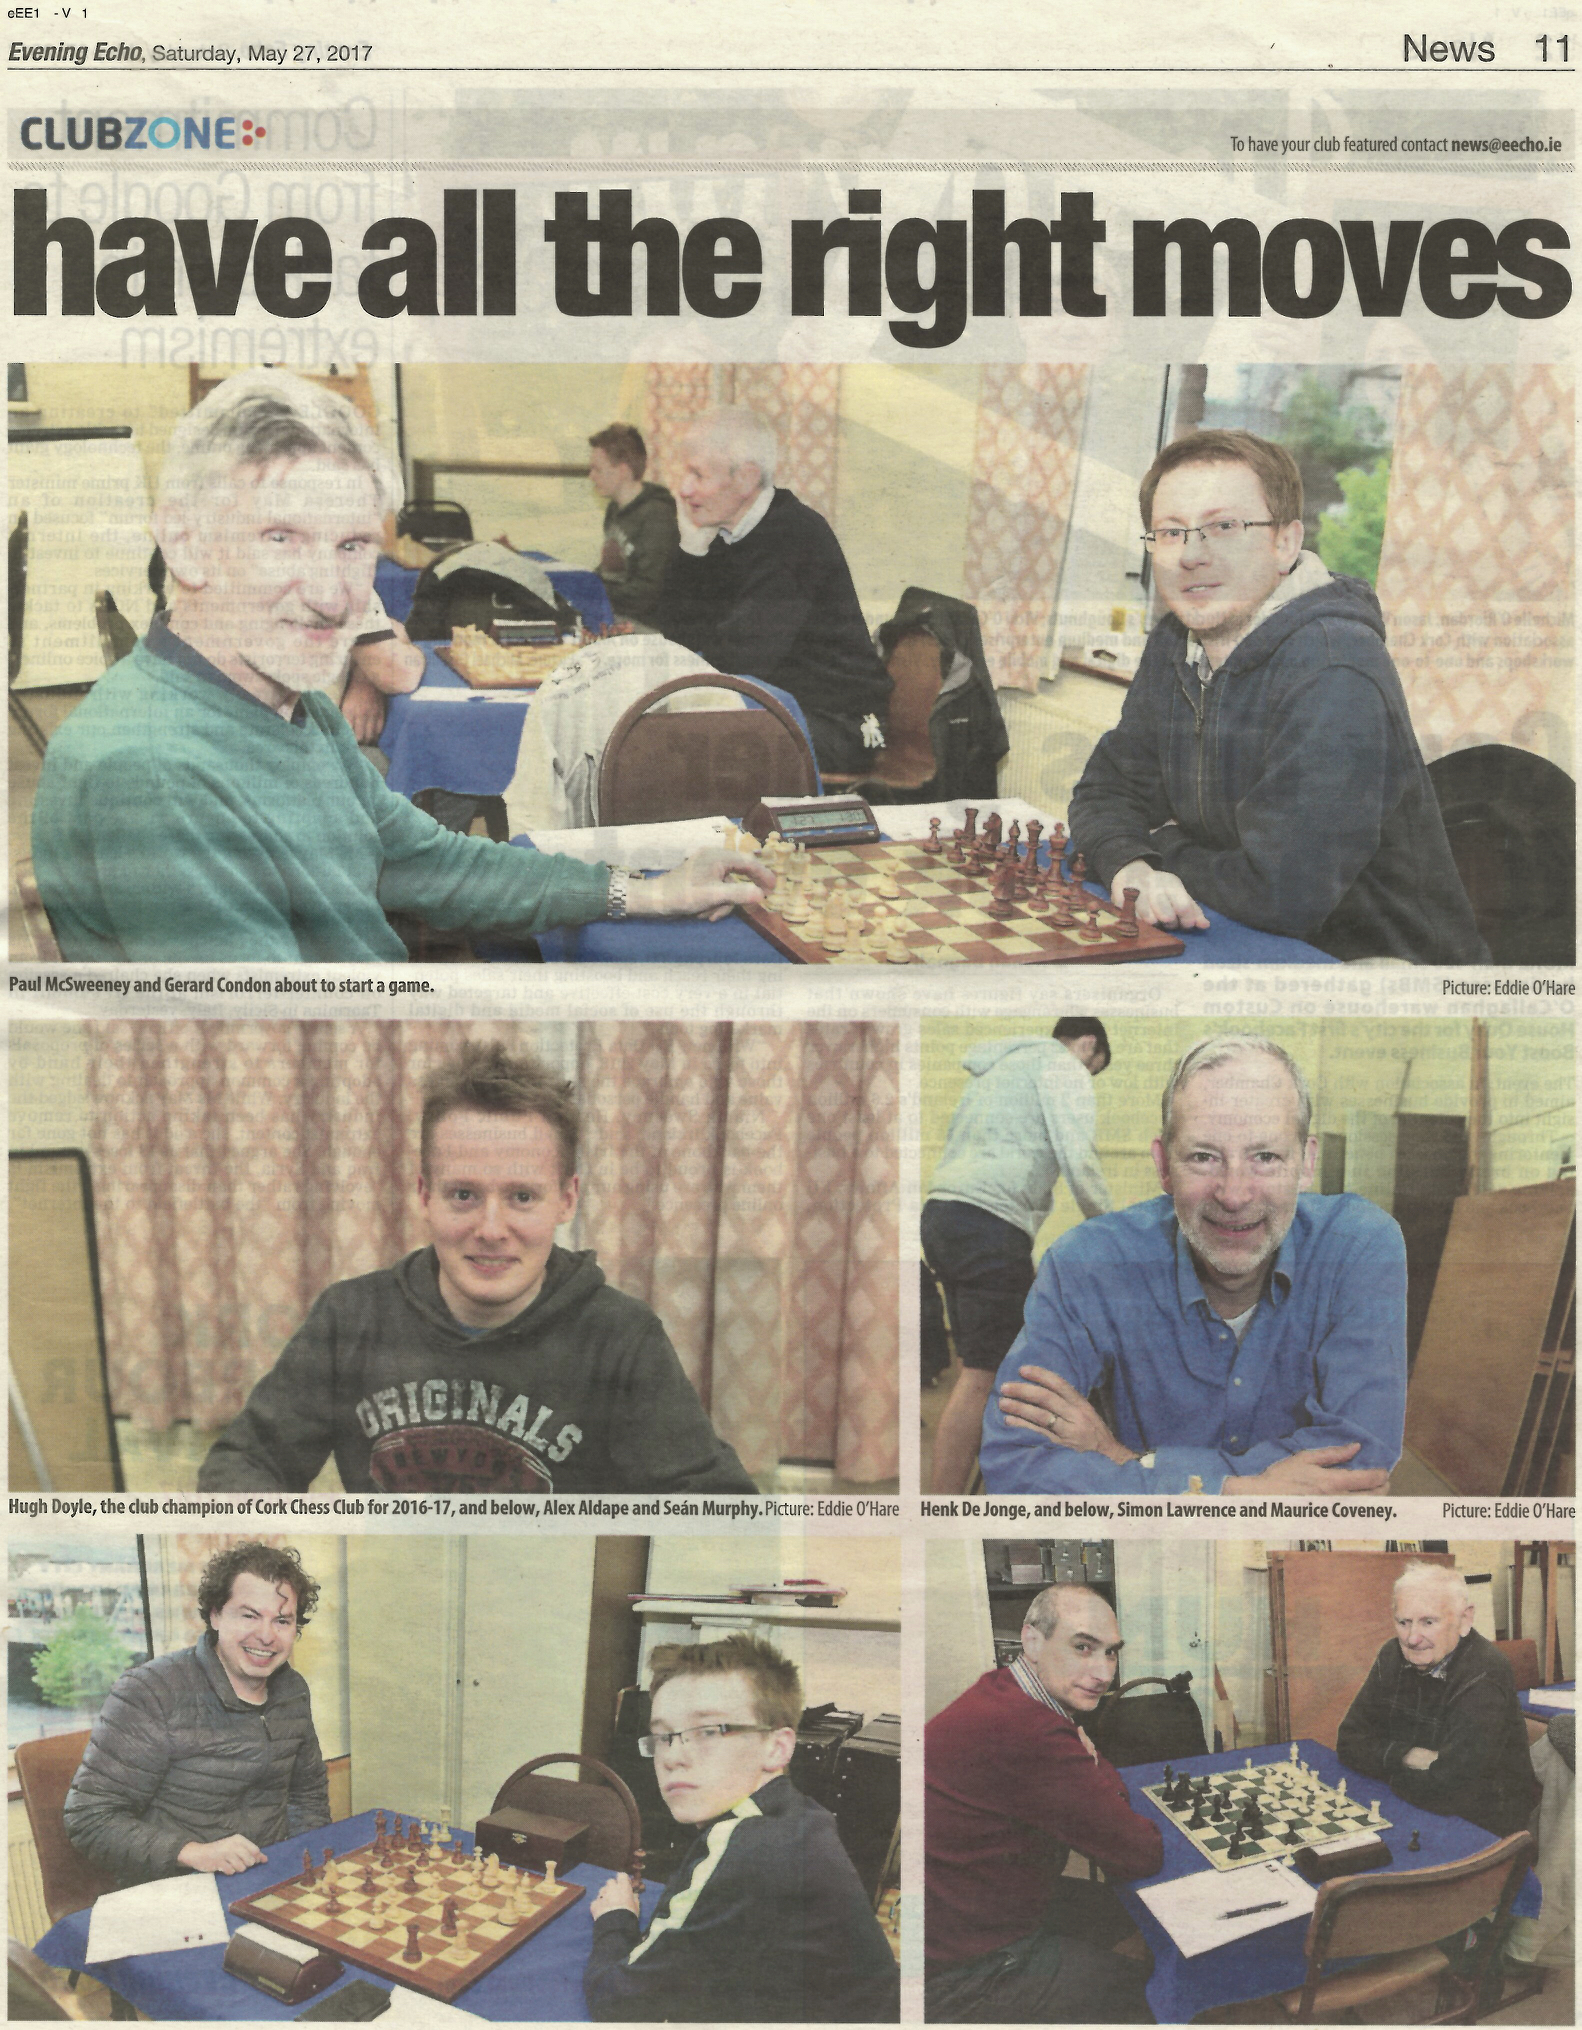 Evening Echo clubzone Feature